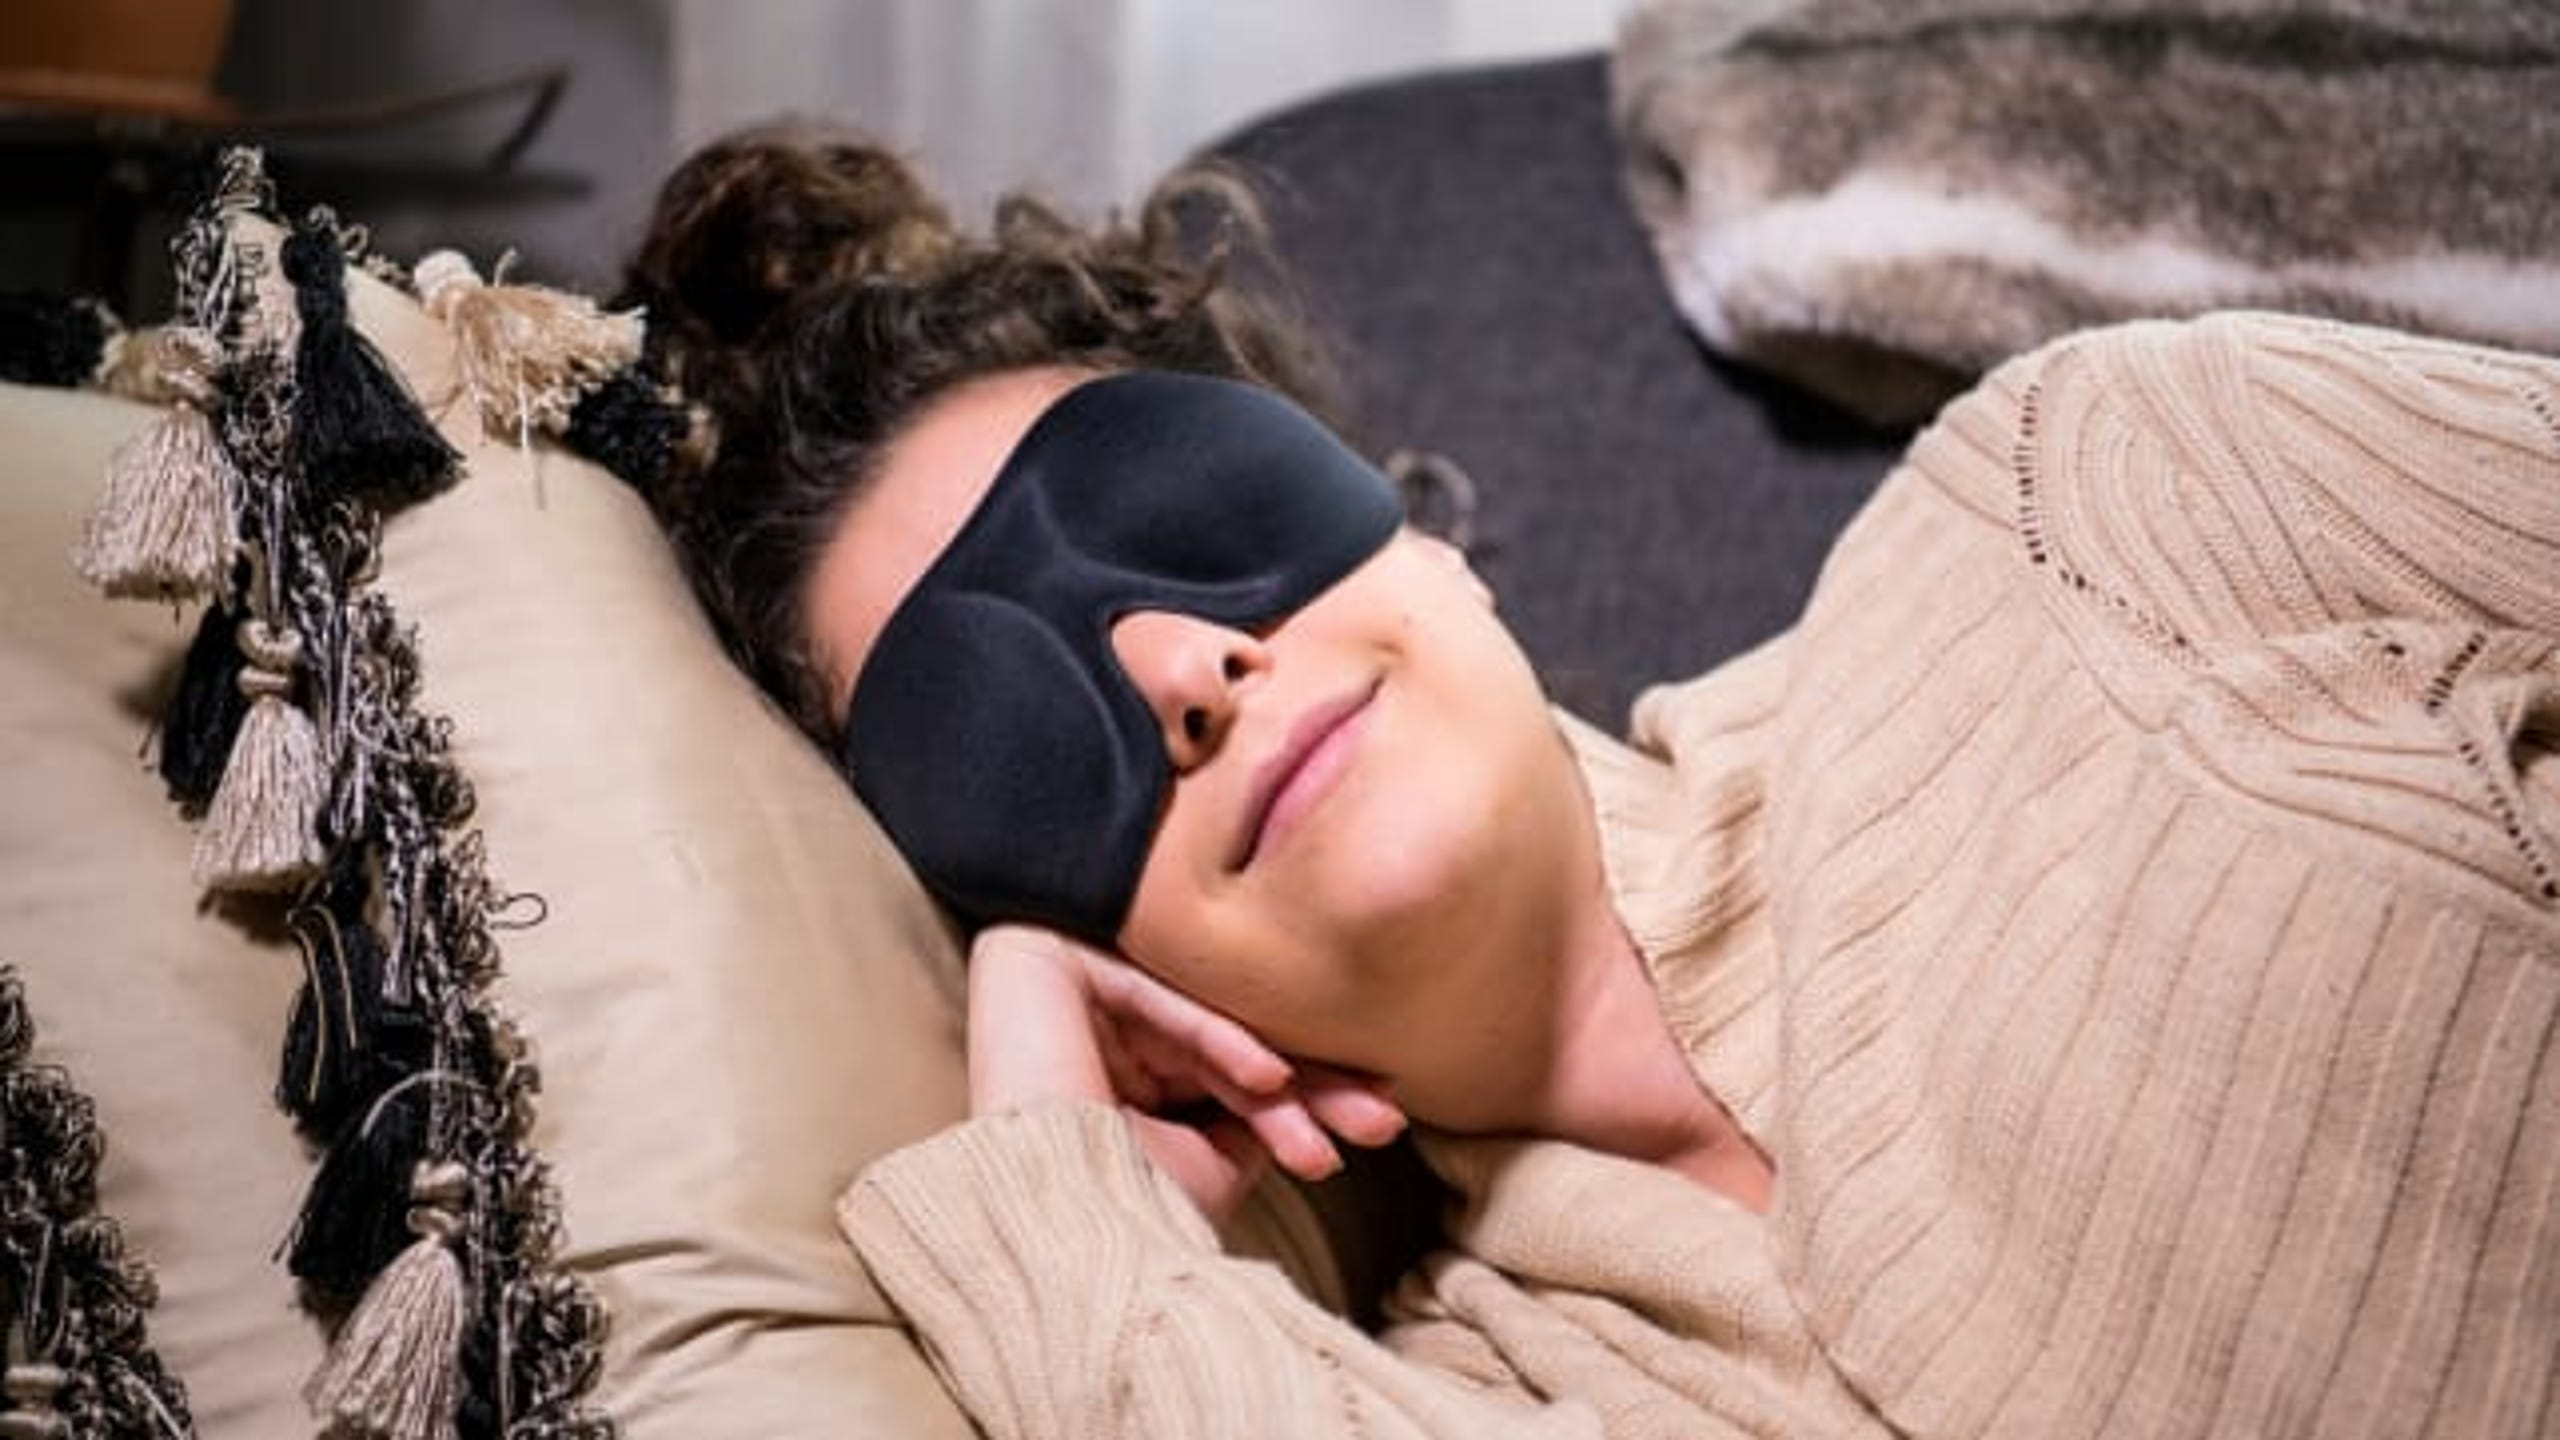 "if you want to beat your cold this winter, getting some shut eye during the day will be one of the best remedies. Of course, sunlight can make it incredibly hard to take a nap, which is where this Nidra Eye Mask comes in handy.&nbsp;We think it's&nbsp;<a href=""https://www.reviewed.com/home-outdoors/best-right-now/the-best-sleep-masks?utm_source=usat&amp;utm_medium=referral&amp;utm_campaign=collab"" target=""_blank"">the best sleep mask</a>&nbsp;because it stays put all night and leaves some space for your eyes so they aren't pressed against the fabric. (<strong><a href=""https://www.amazon.com/Patented-Contoured-Adjustable-Satisfaction-Guaranteed/dp/B01N4GNSX6/ref=as_li_ss_tl?ie=UTF8&amp;linkCode=ll1&amp;tag=usatgallery-20&amp;linkId=192840fc8c797558634176430f0df8a3&amp;language=en_US"" target=""_blank"">$11.95 on Amazon</a></strong>)"